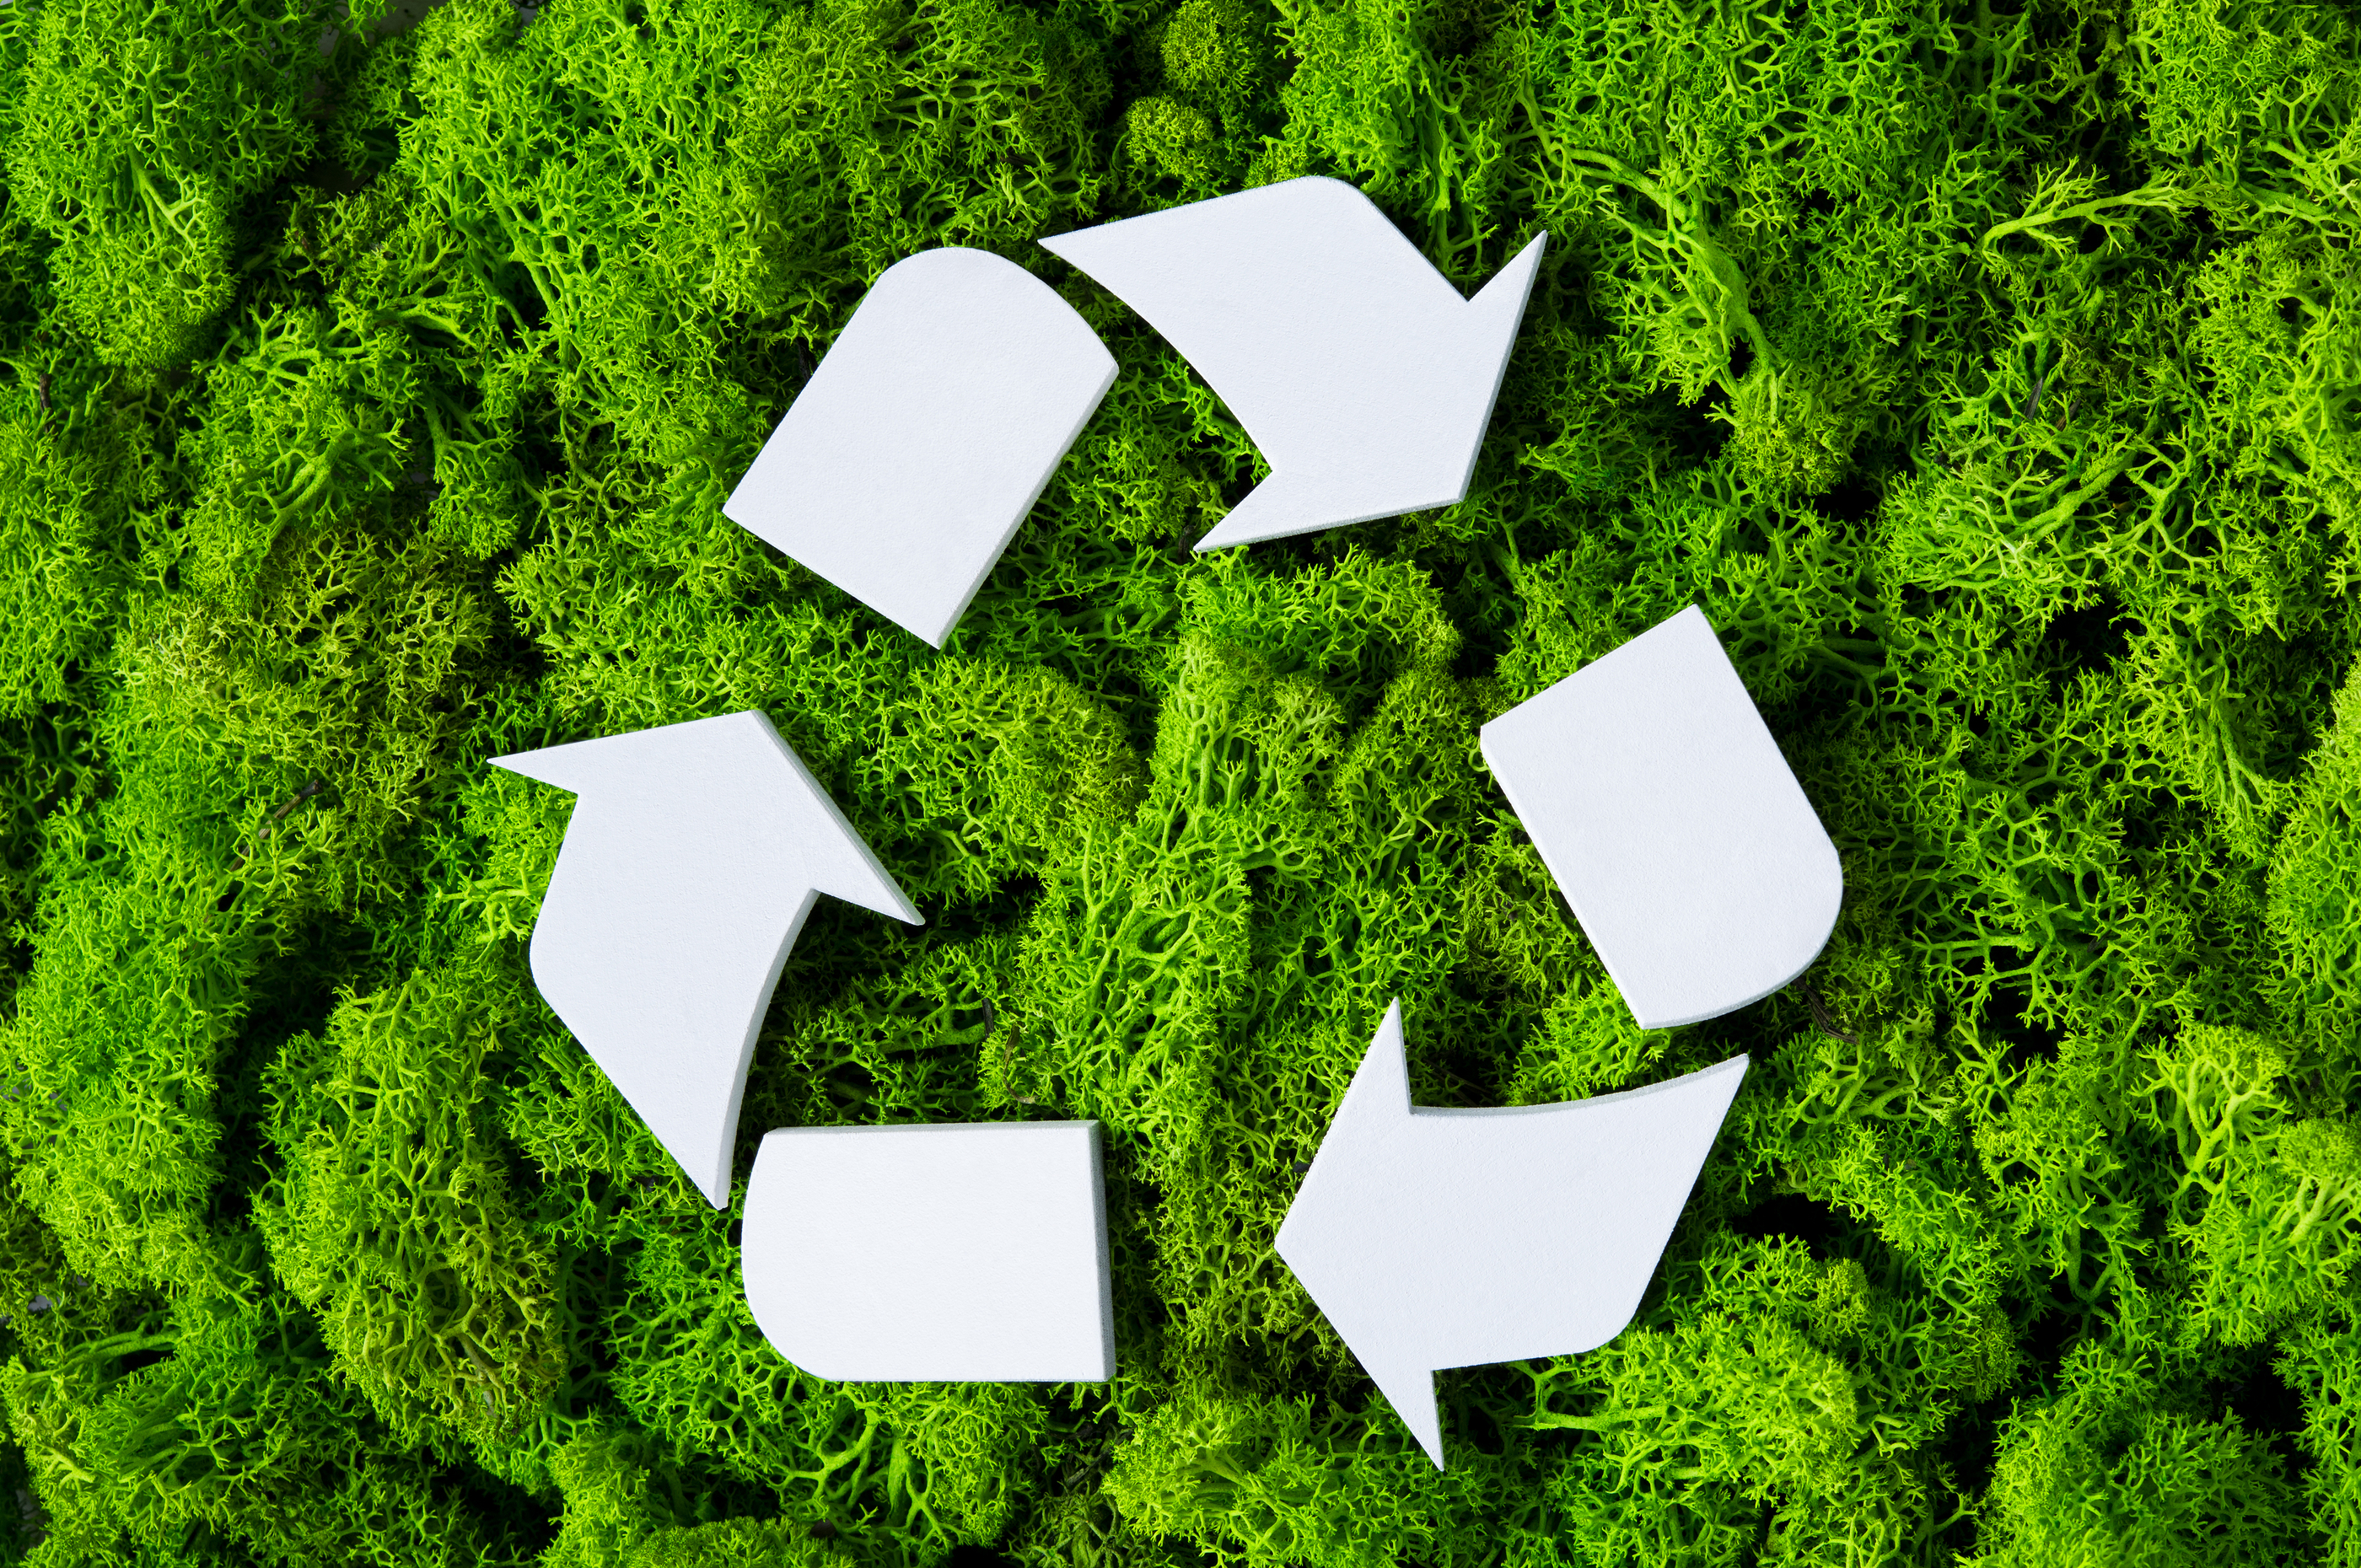 How to improve & increase your recycling - The Waste Management & Recycling  Blog